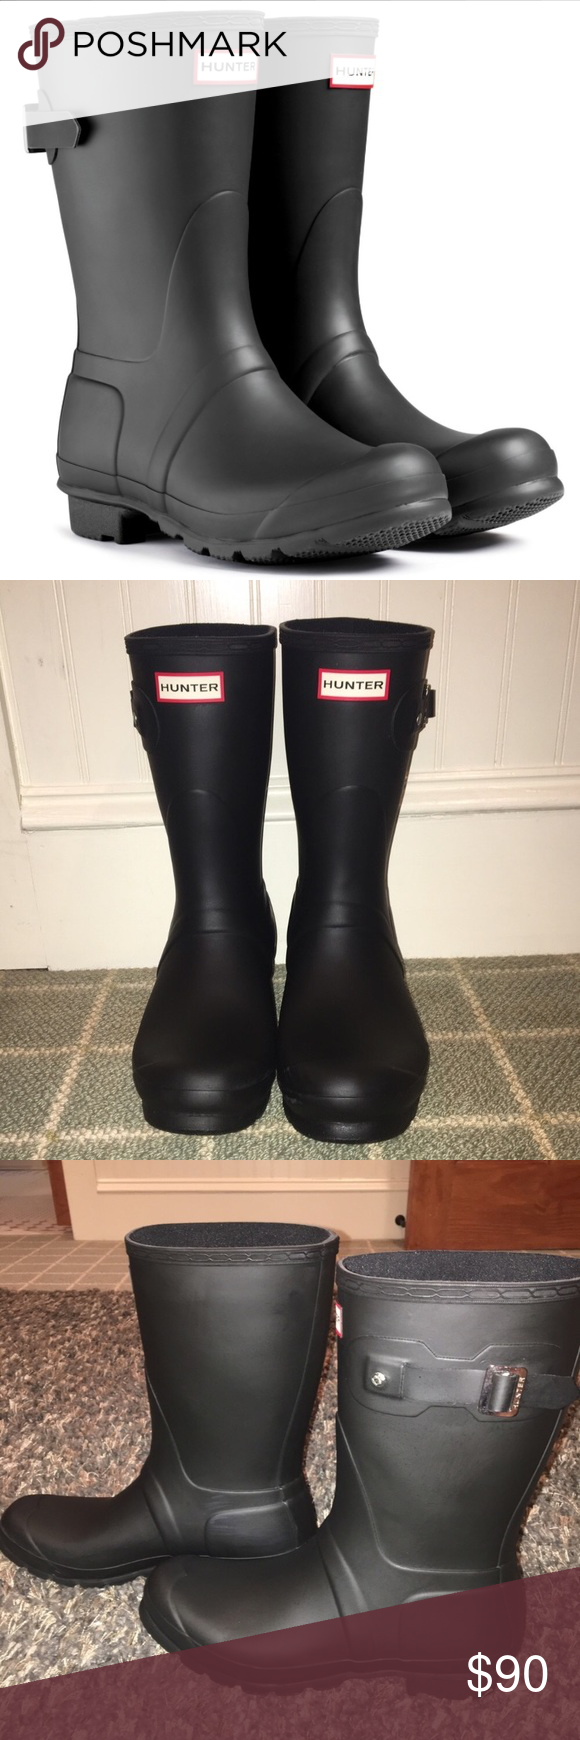 NWOT Black Hunter Boots Never ever been worn black matte Hunter rain boots- accidentally bought the wrong size and they were not returnable. No flaws, have been sprayed with Hunter Boot Buffer Spray. Hunter Boots Shoes Winter & Rain Boots